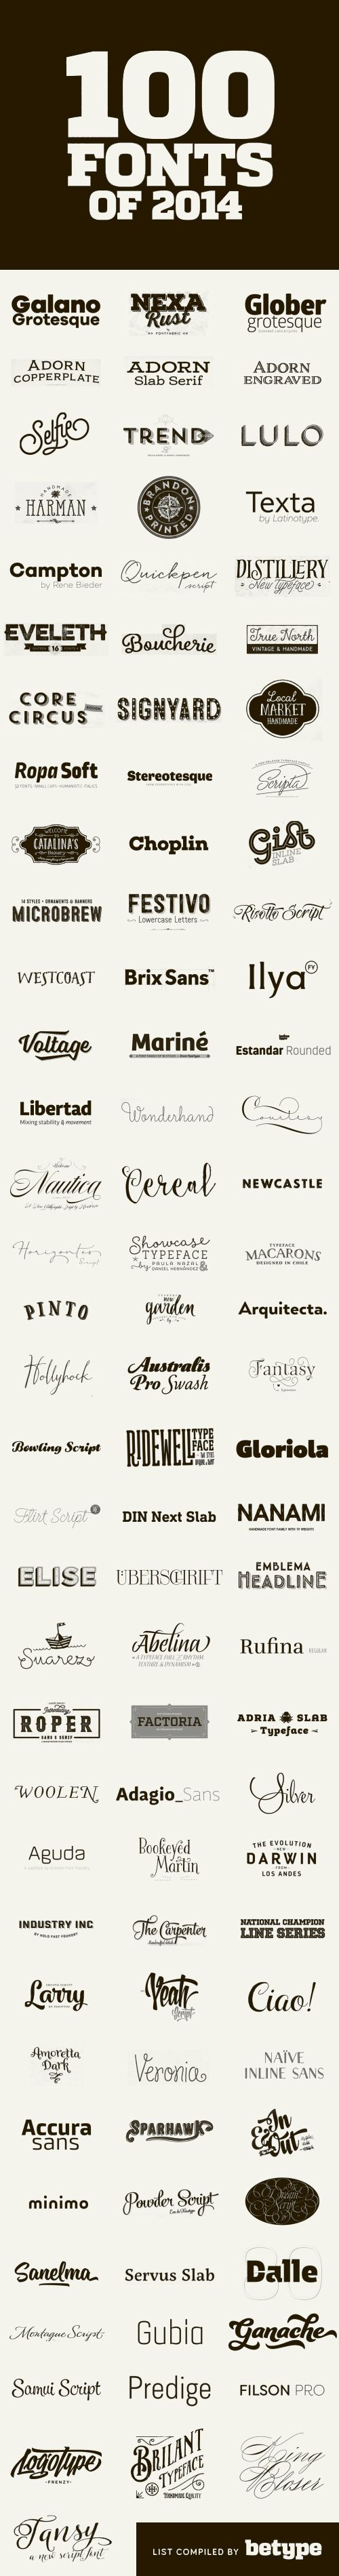 Top 100 Fonts of 2014 as compiled by betype